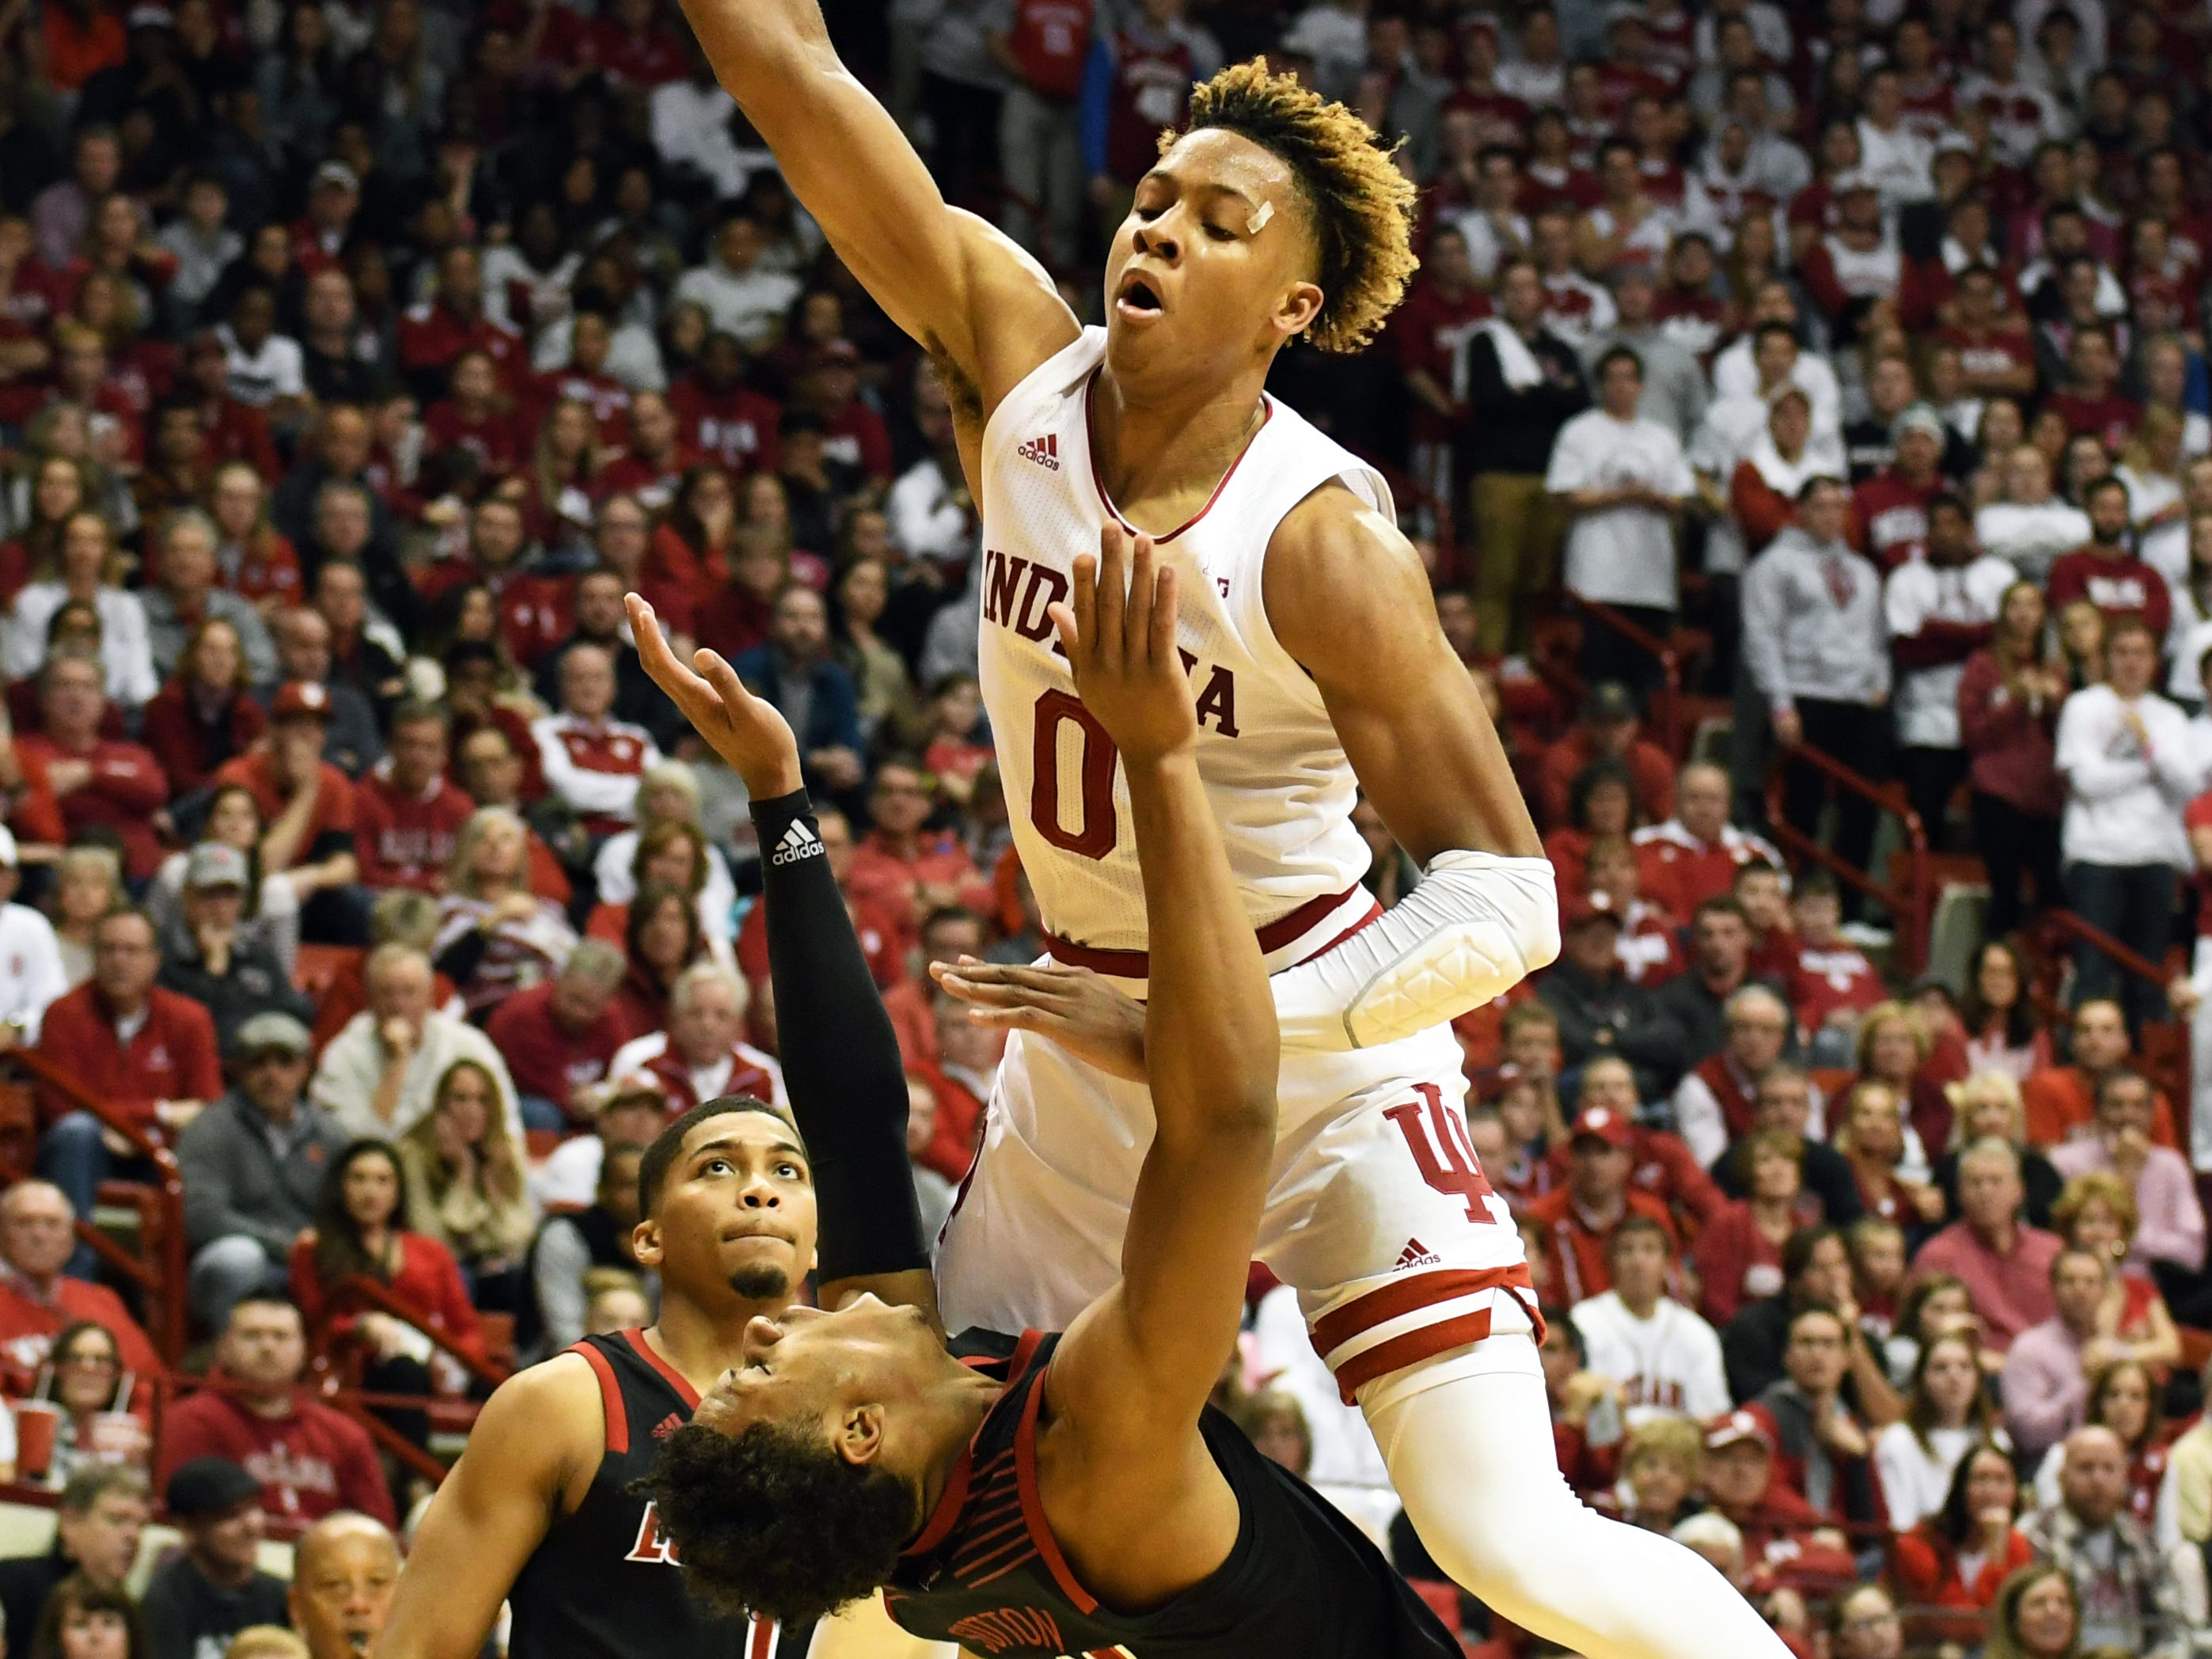 Indiana Hoosiers guard Romeo Langford (0) is called for an offensive foul as he goes to the basket during the game against Louisville at Simon Skjodt Assembly Hall in Bloomington, Ind.